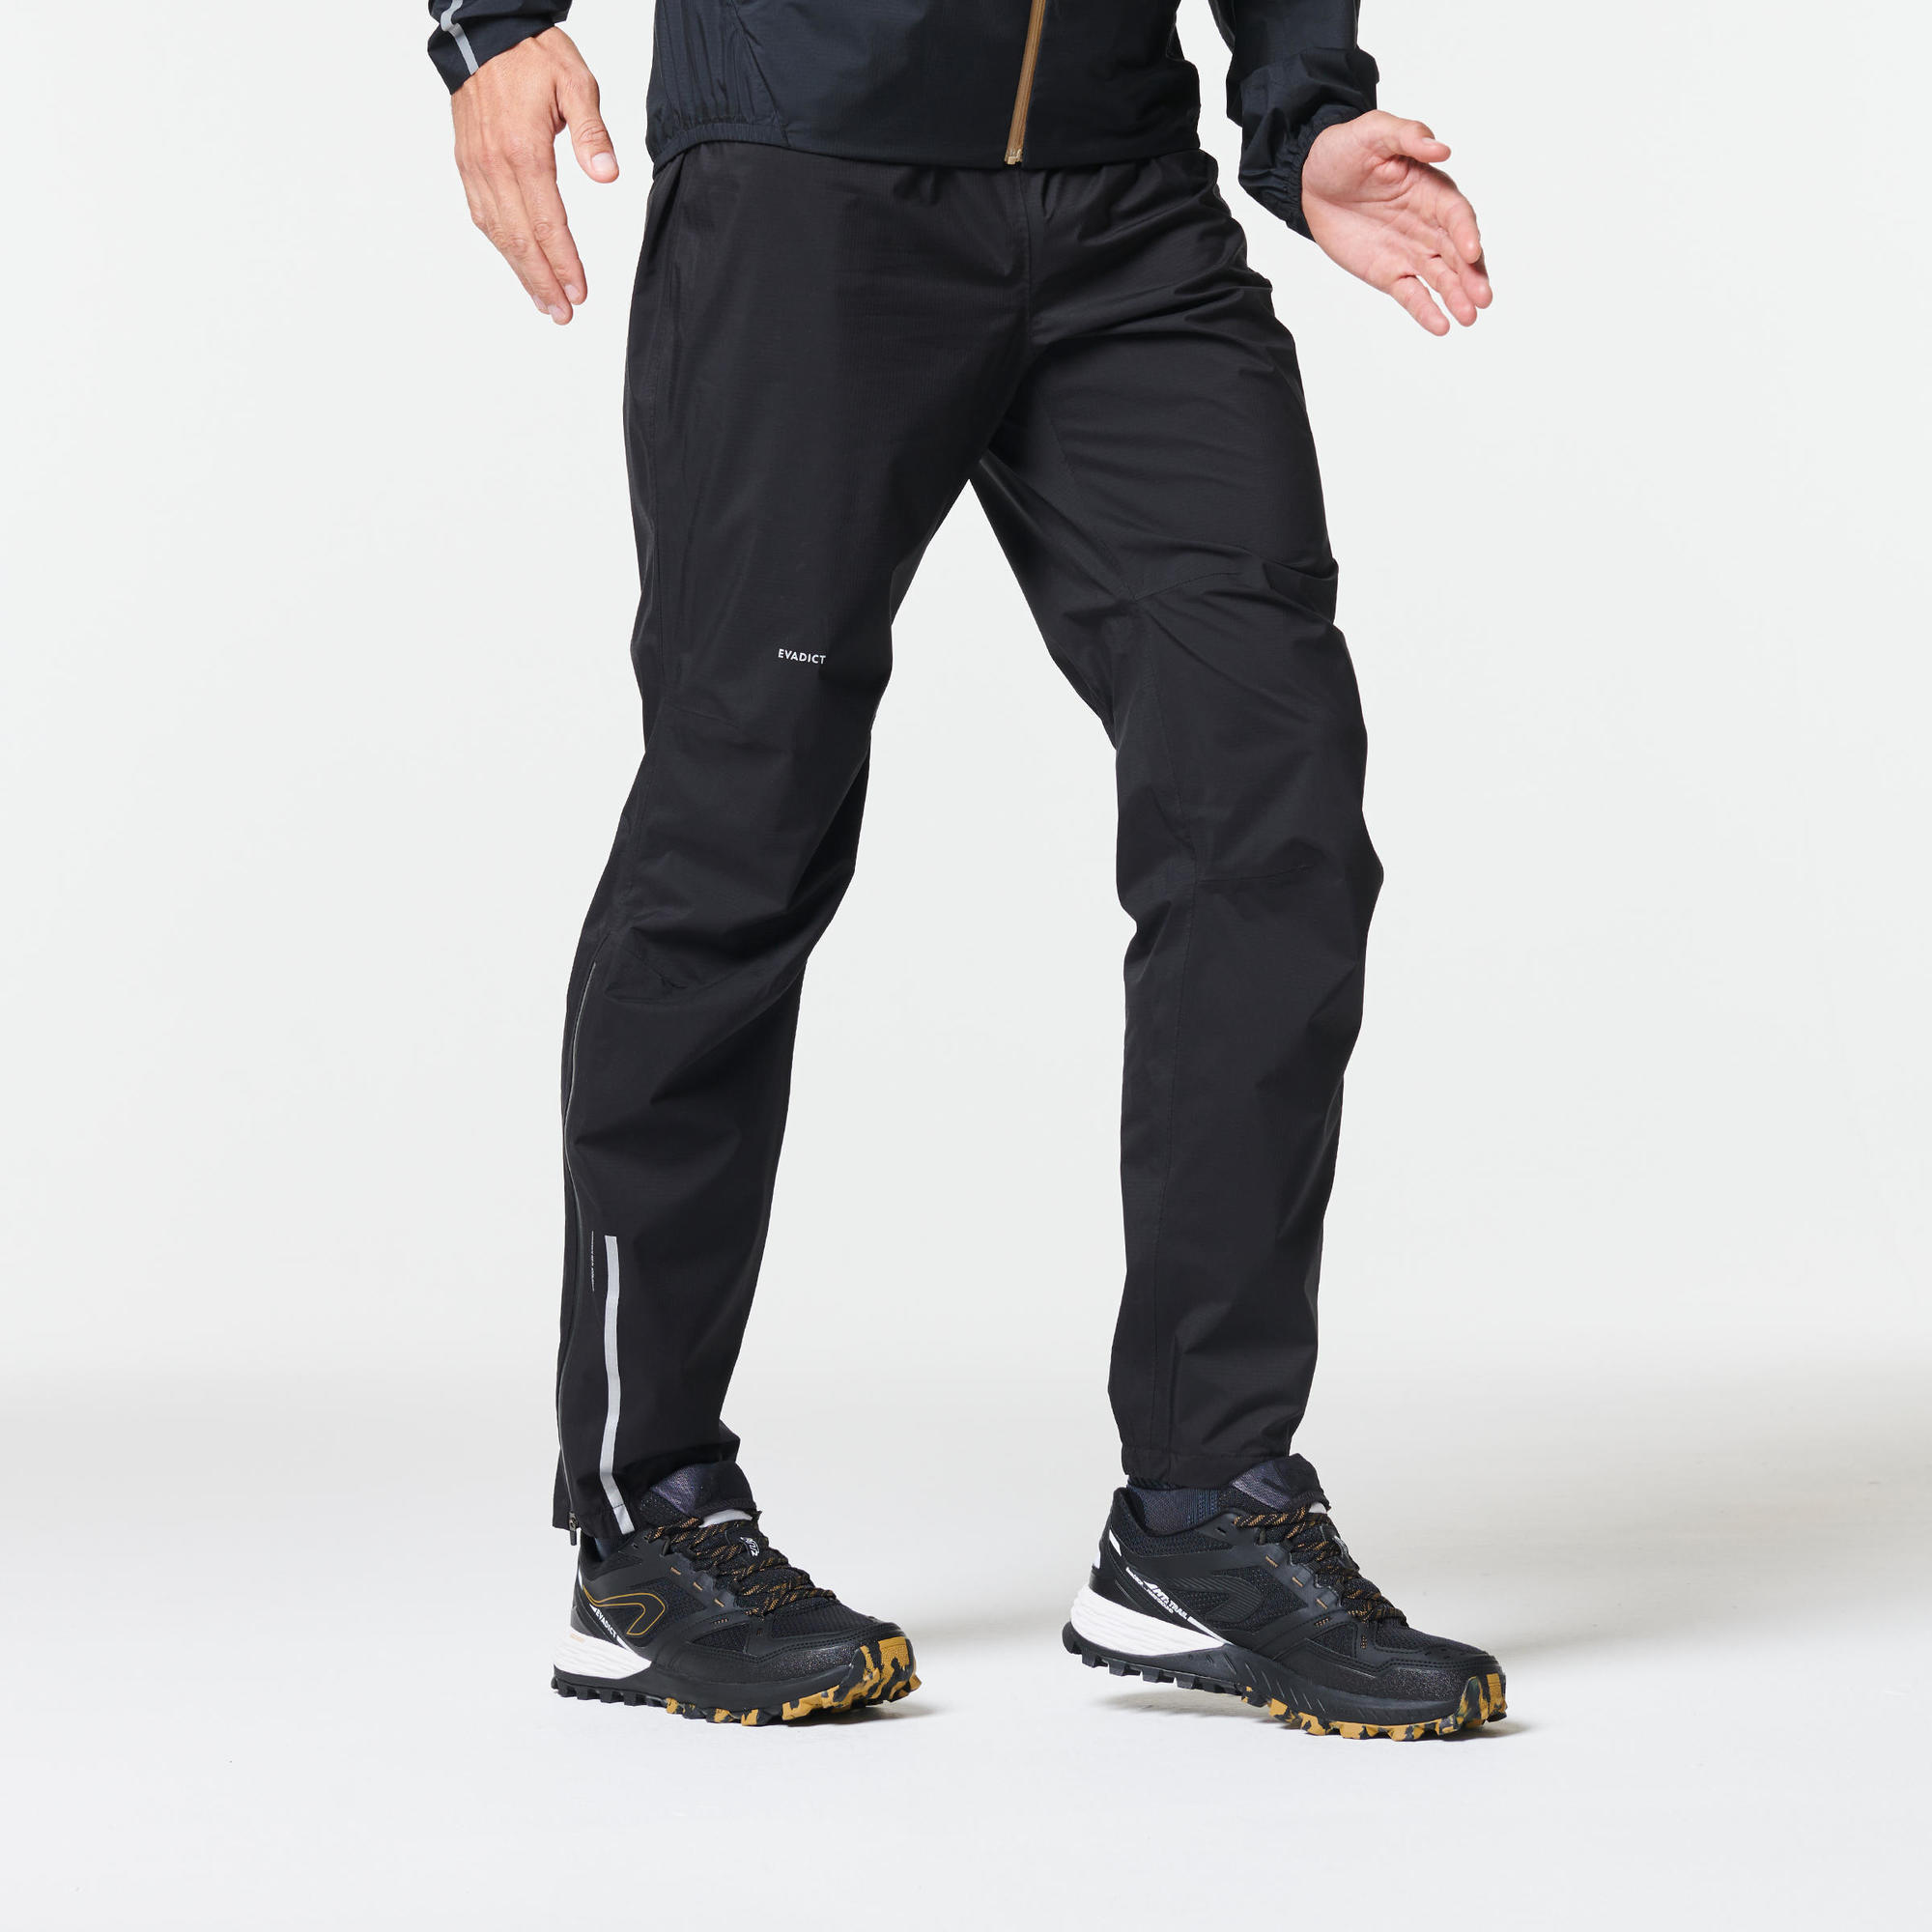 Limited Time Deals New Deals Everyday Pantalon Impermeable Running Off 77 Buy